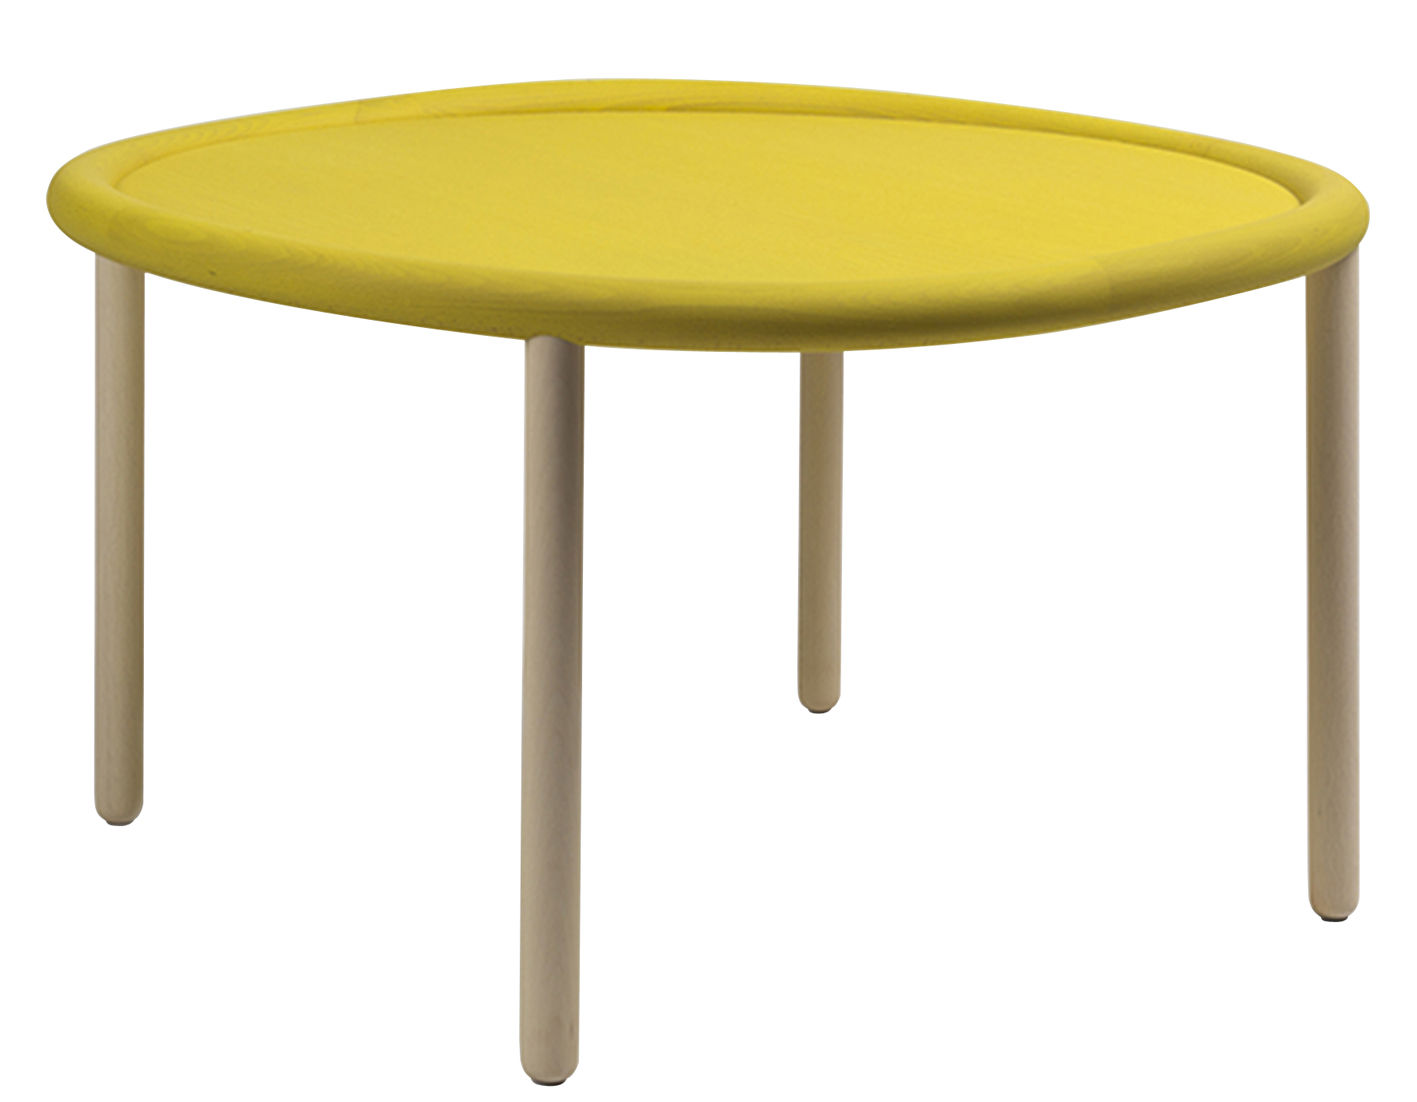 gt Furniture gt Coffee tables gt Serve Coffee table   216 72 cm by Hay